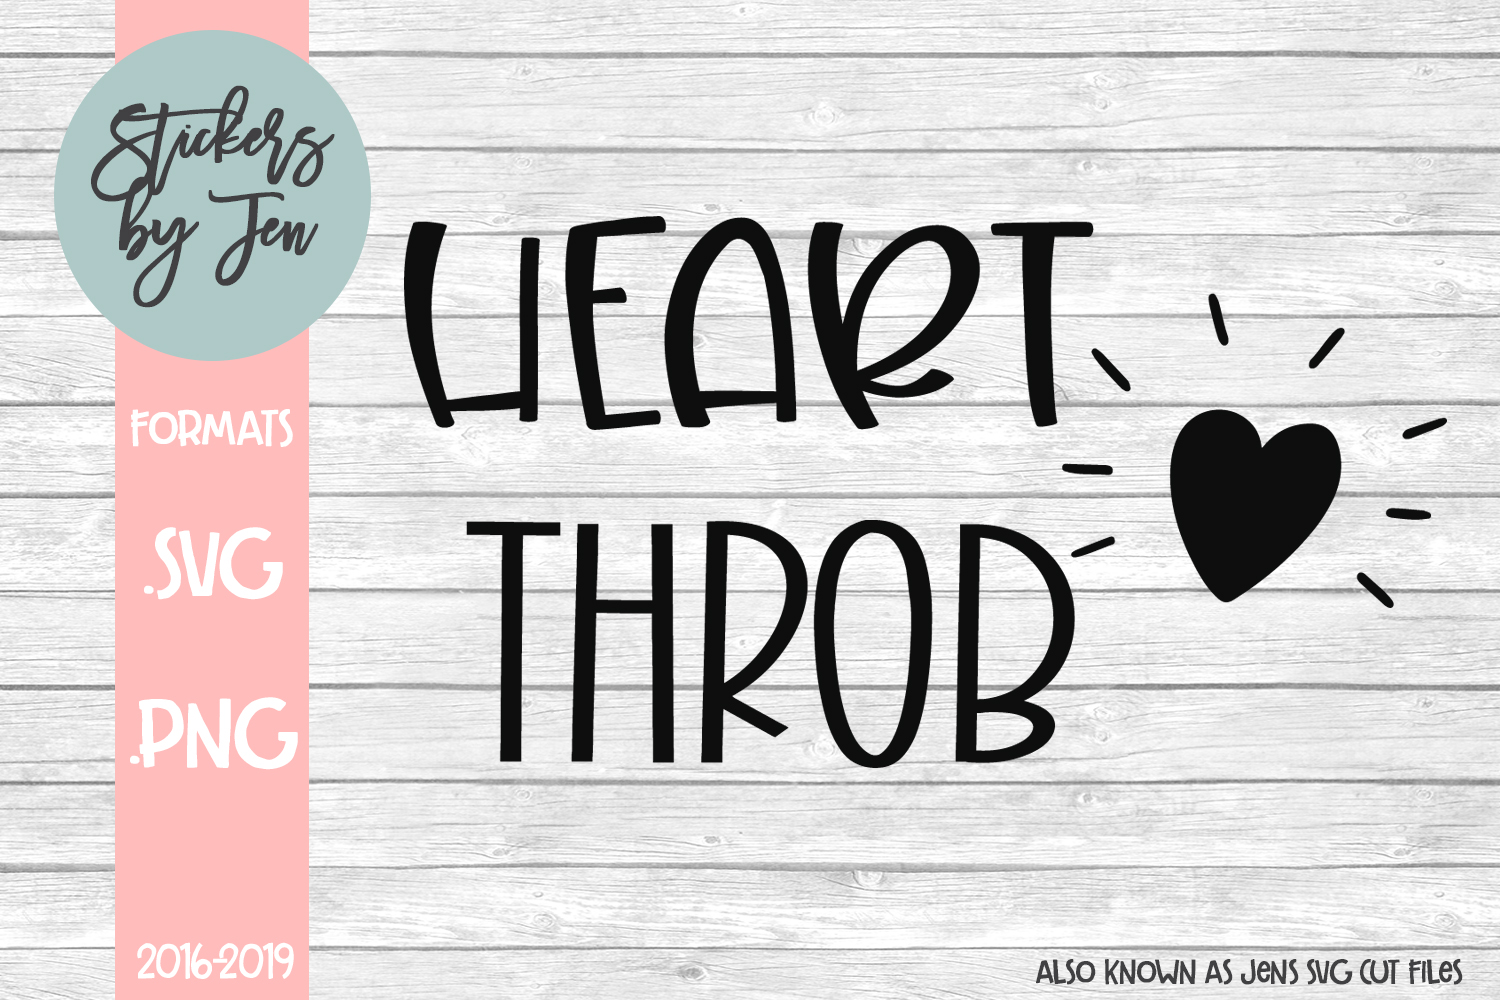 Download Free Heartthrob Graphic By Stickers By Jennifer Creative Fabrica for Cricut Explore, Silhouette and other cutting machines.